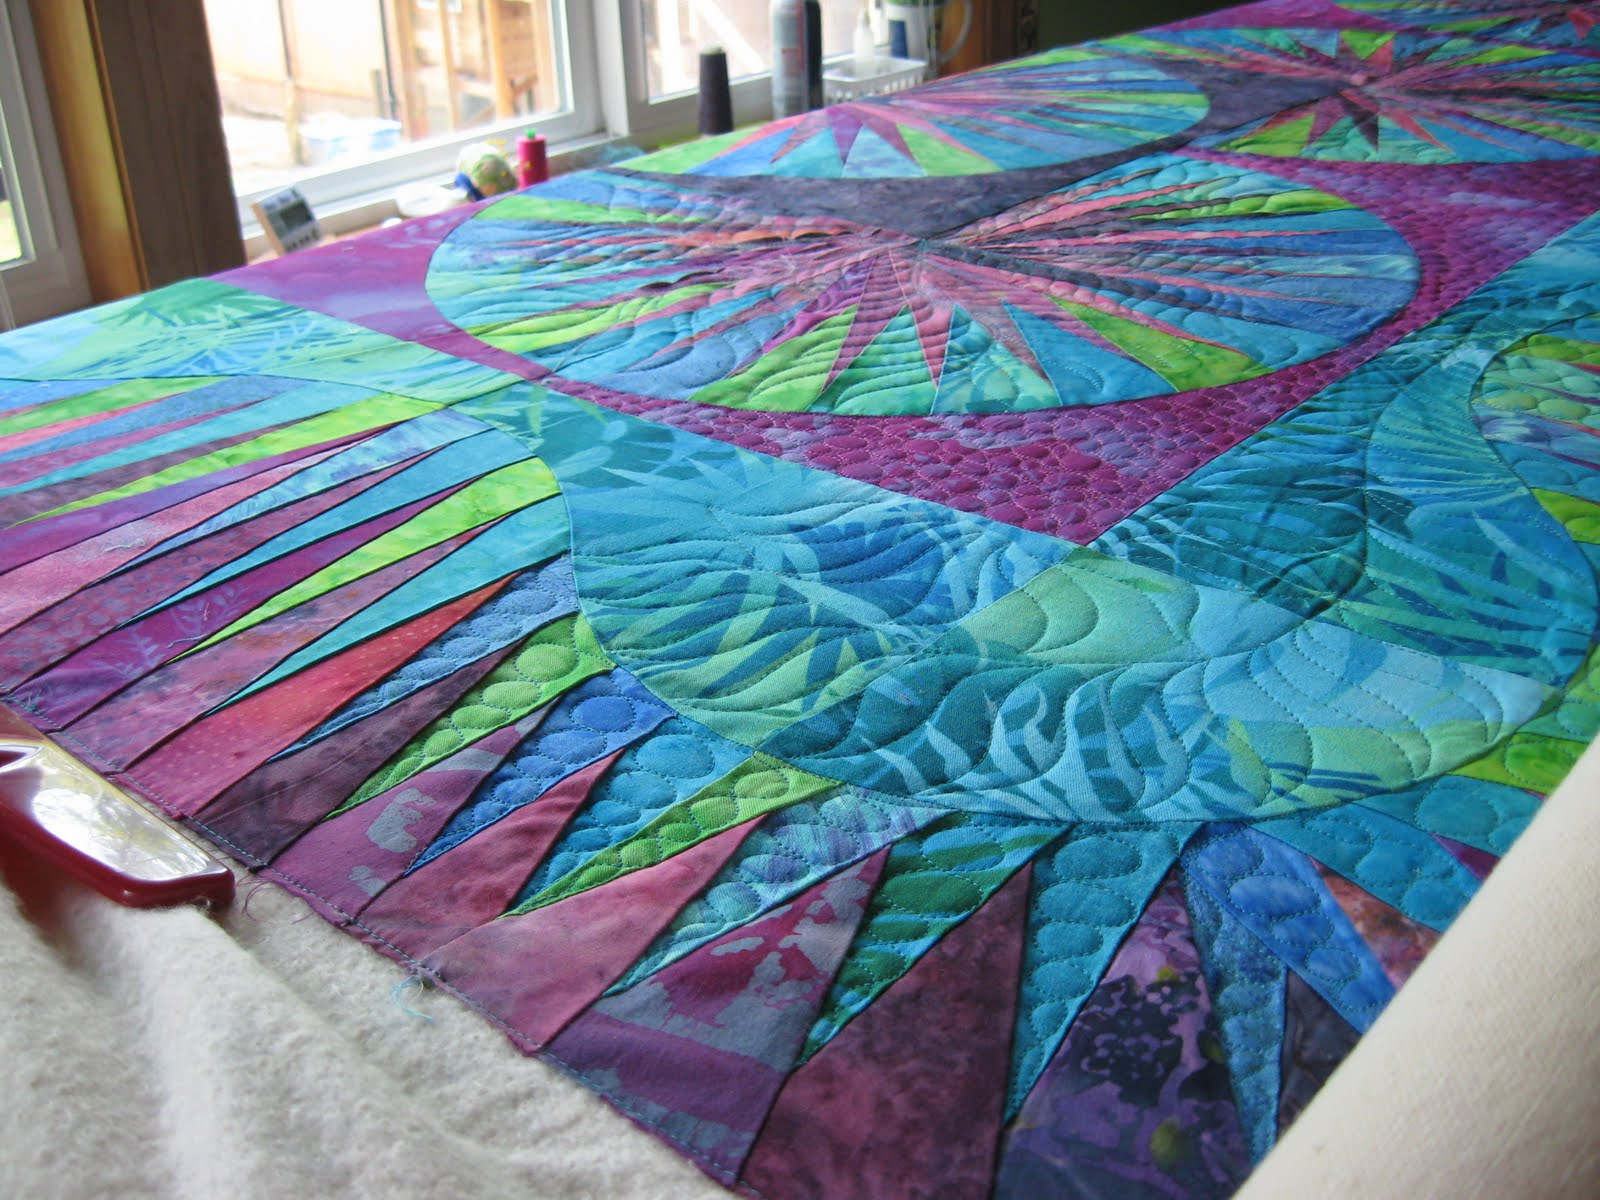 Artistic quilting new york beauty quilt for Bed quilting designs